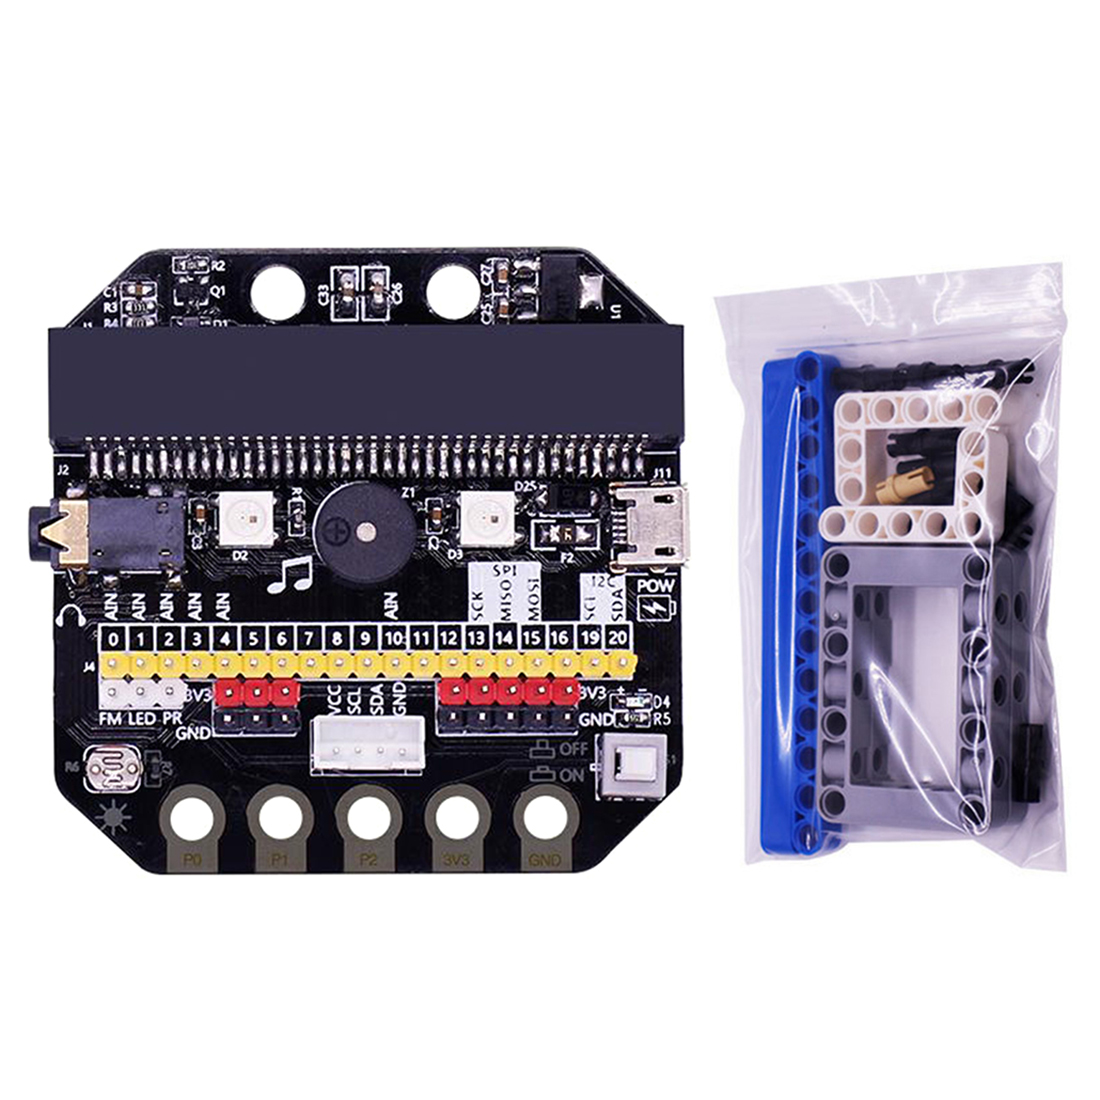 Basic:Bit IO Expansion Board Horizontal Type Pinboard Microbit Python Development Board With Building Block Expansion Pack Micro